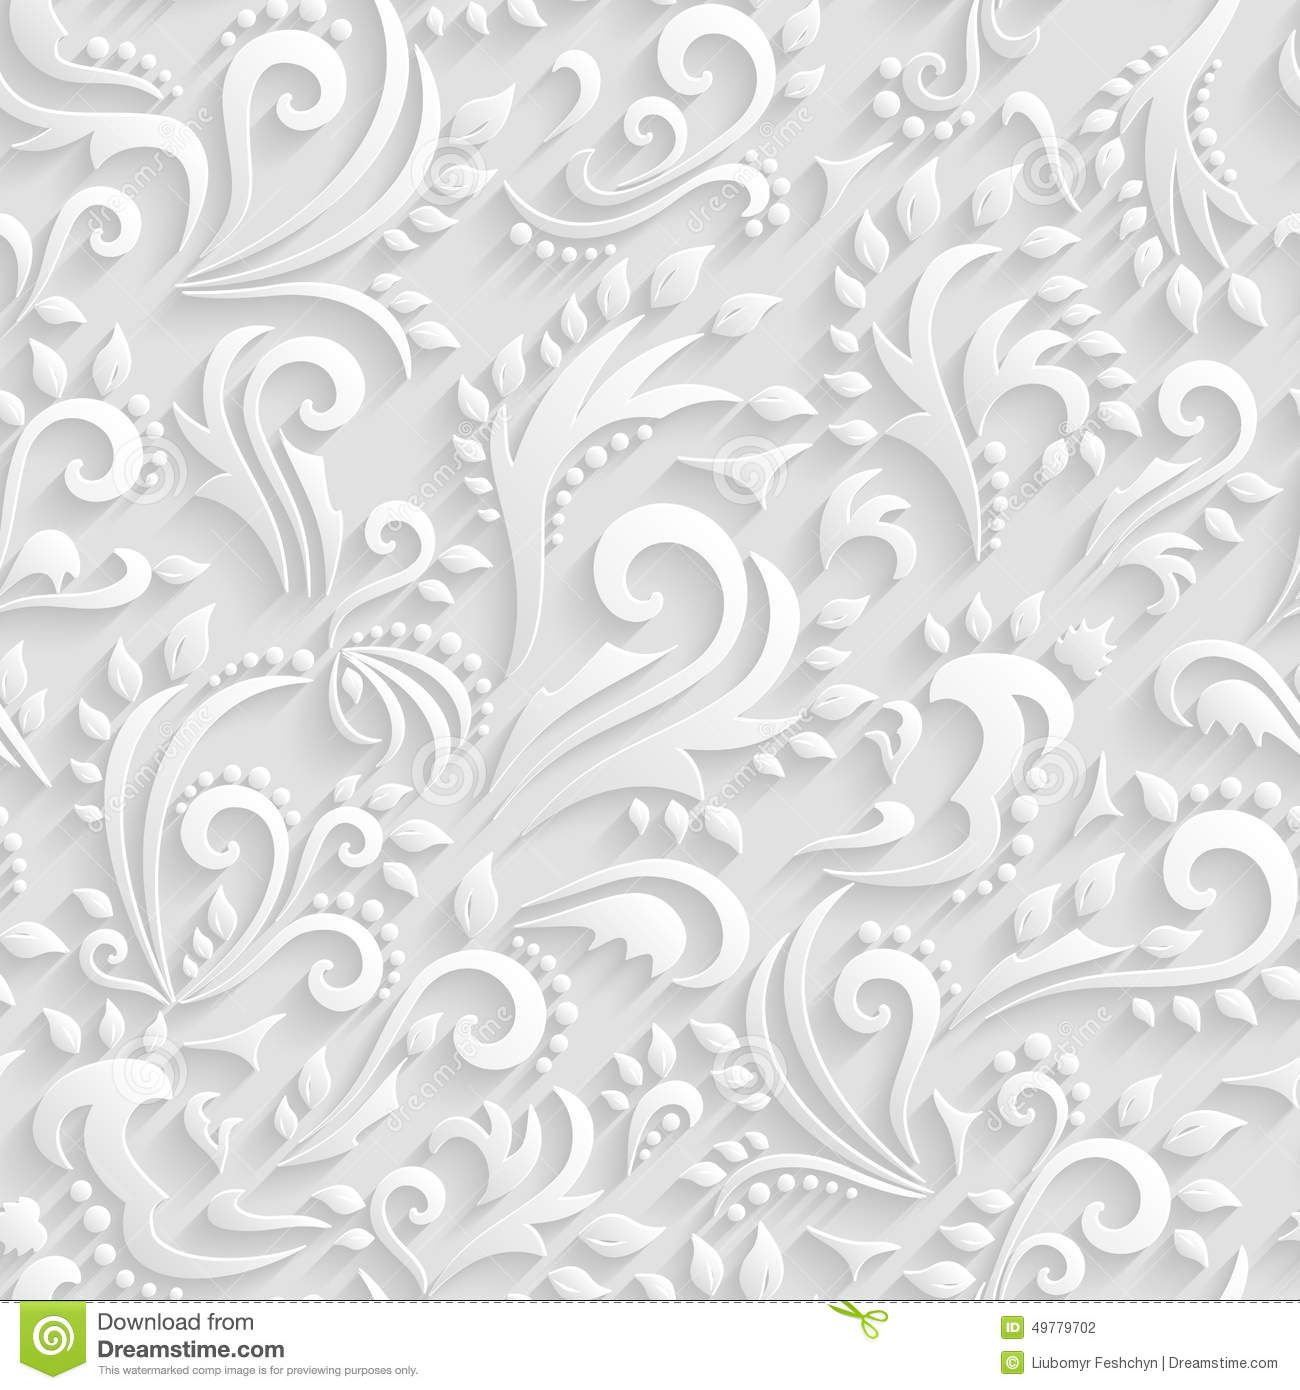 Wedding Paper: Vector Floral Victorian Seamless Background. Dreamstime